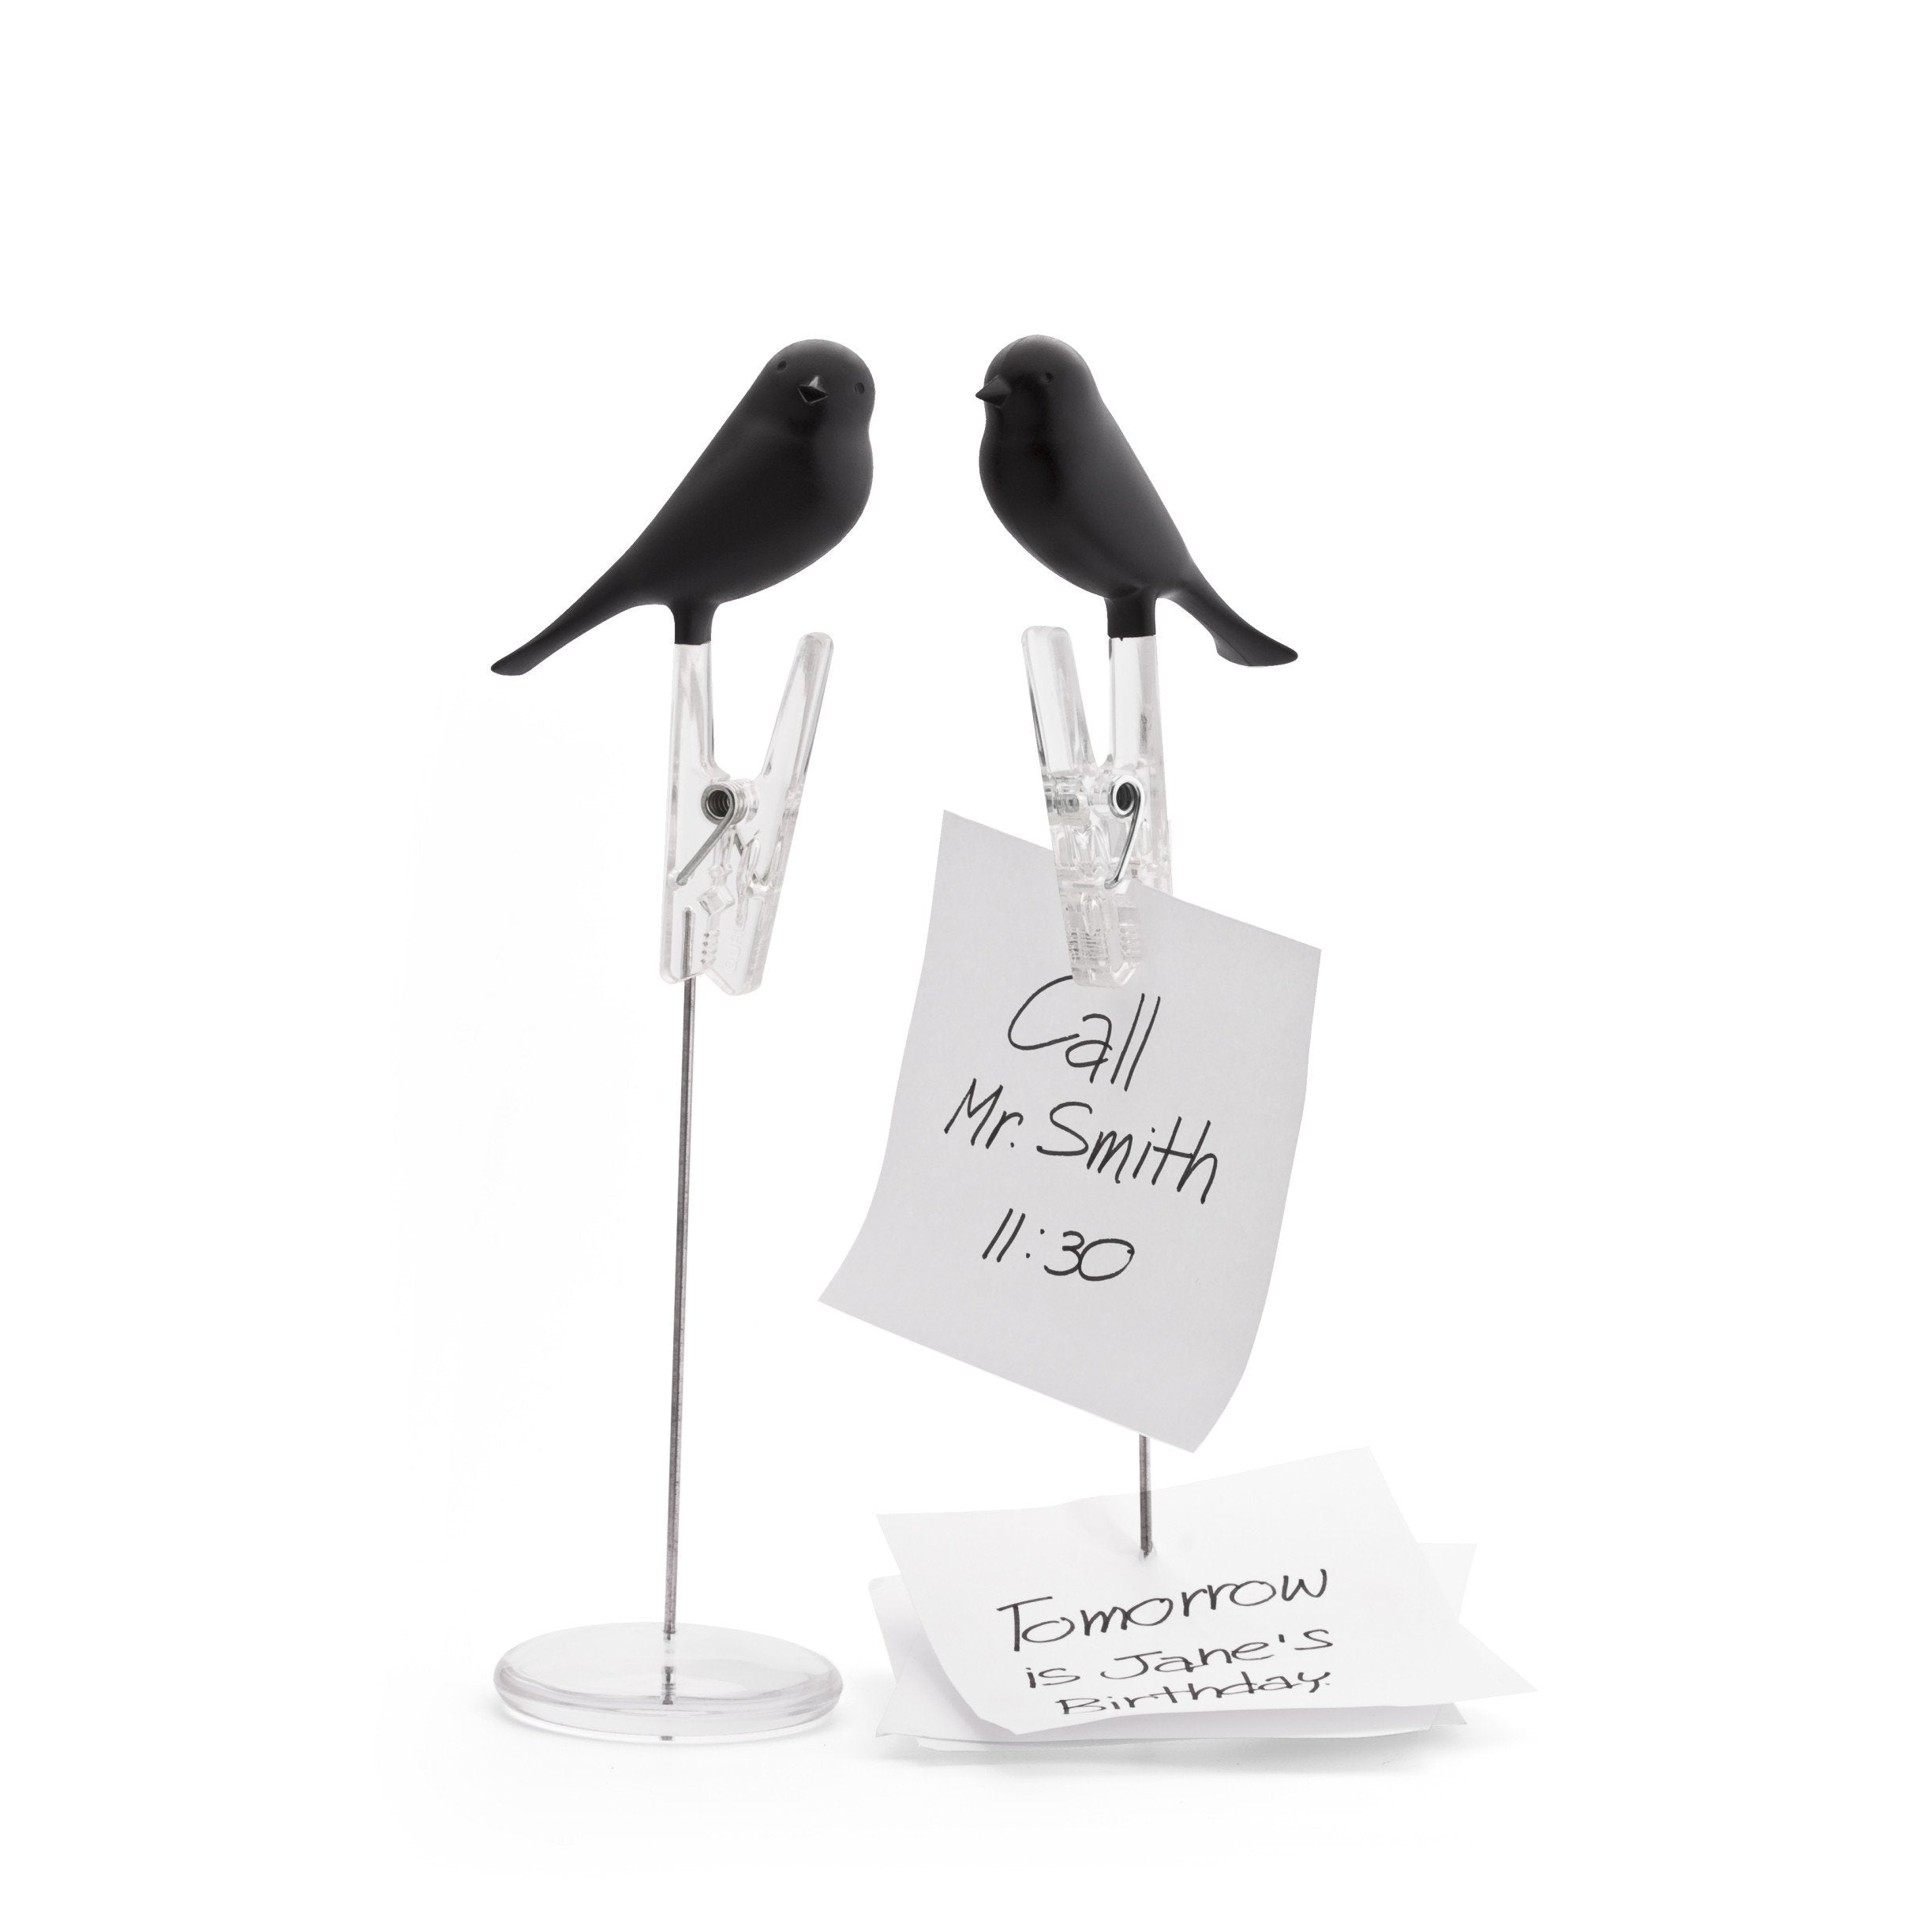 Note Sparrow Note Holder Desk Organisation Qualy Black